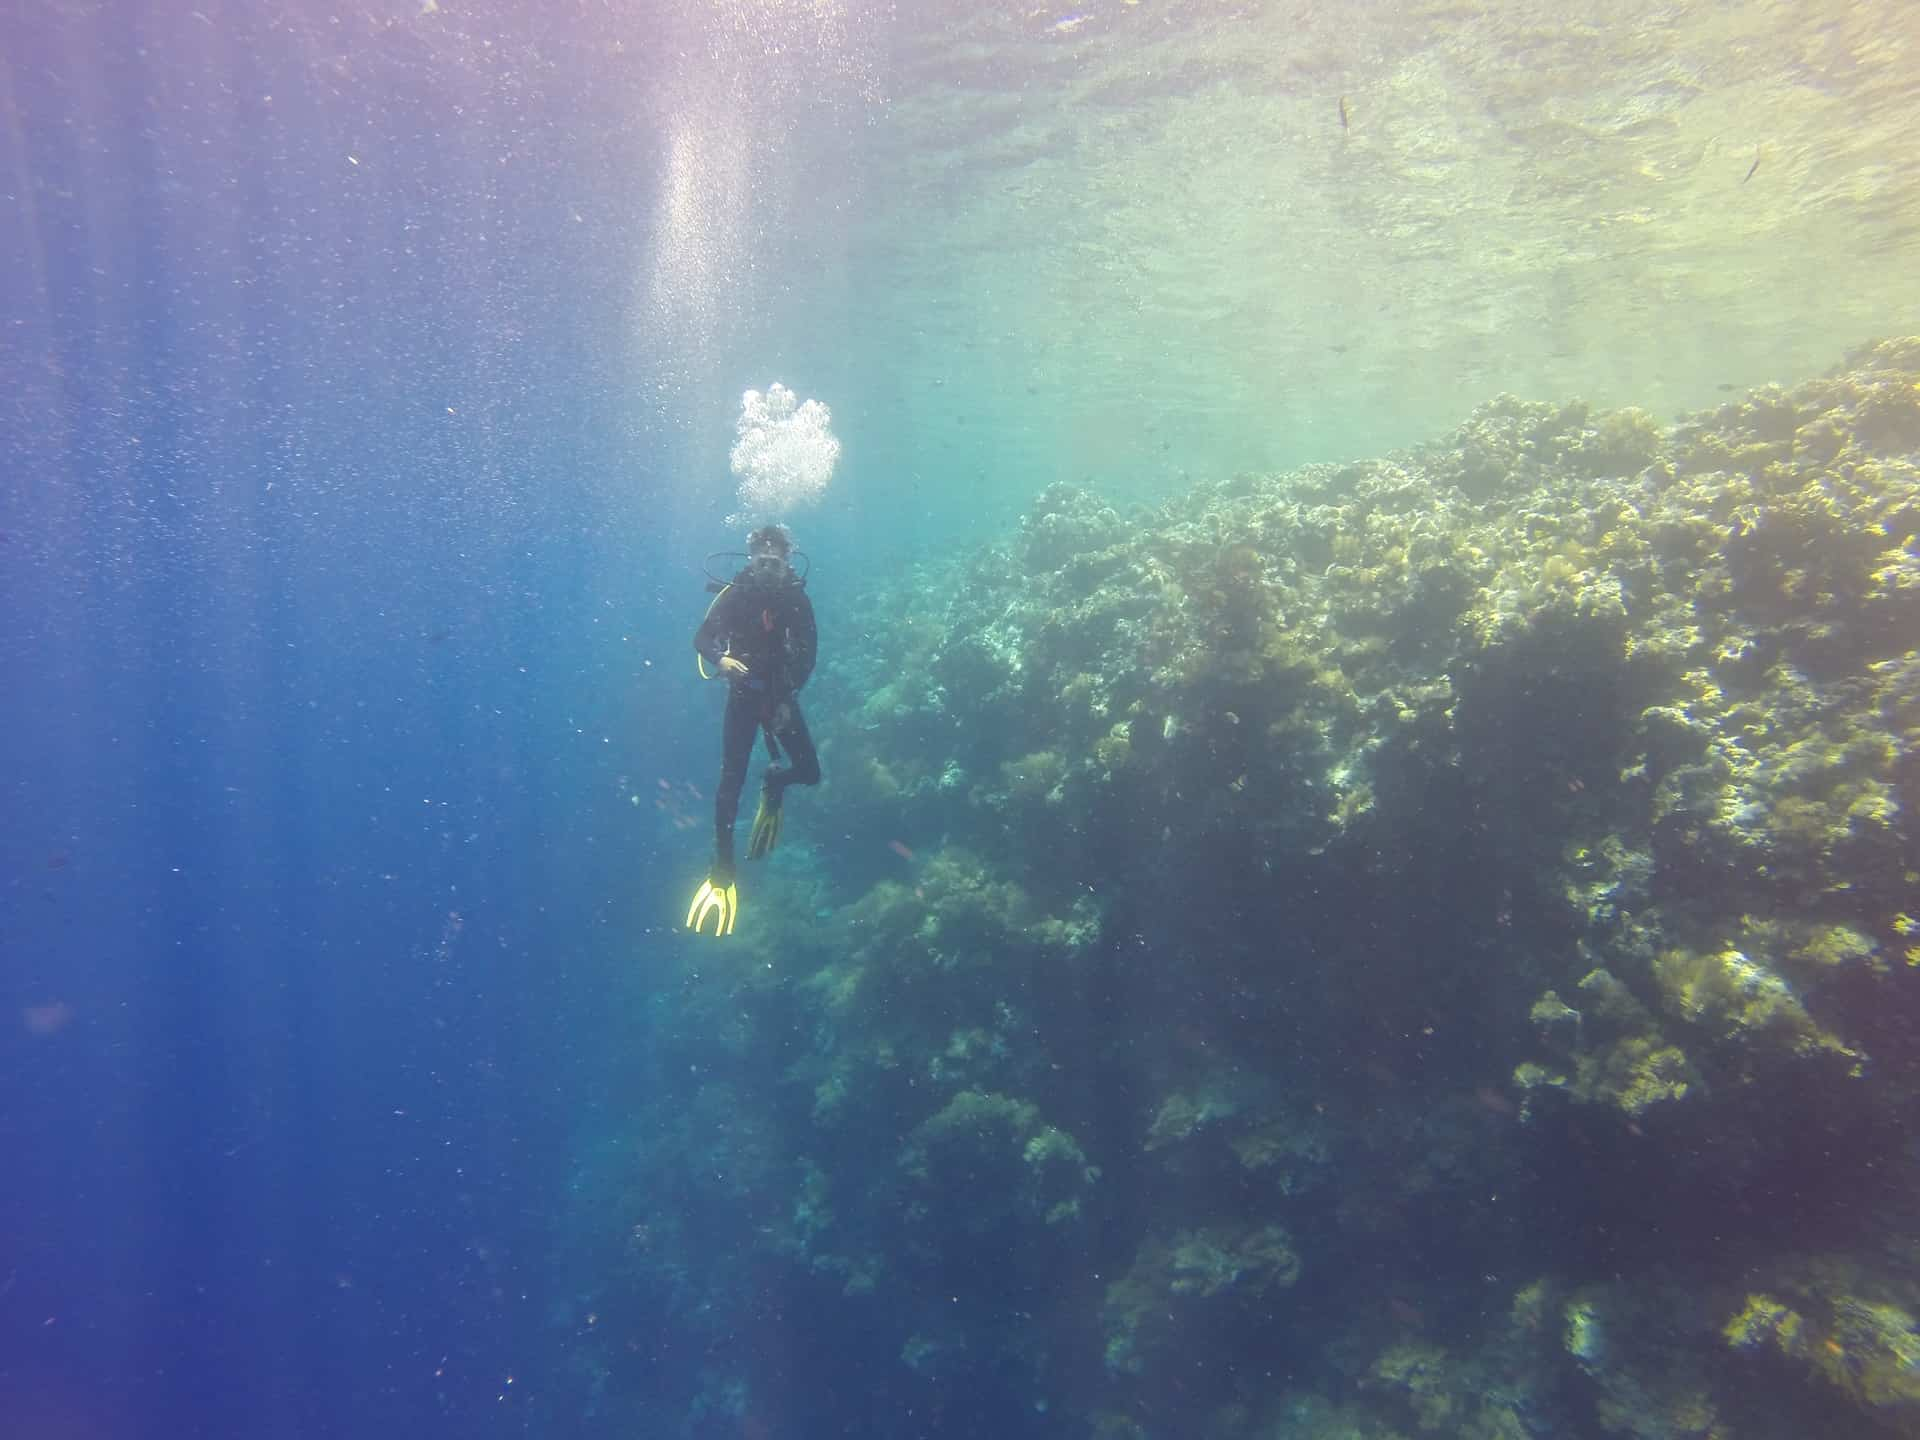 Partial Pressure and Diving